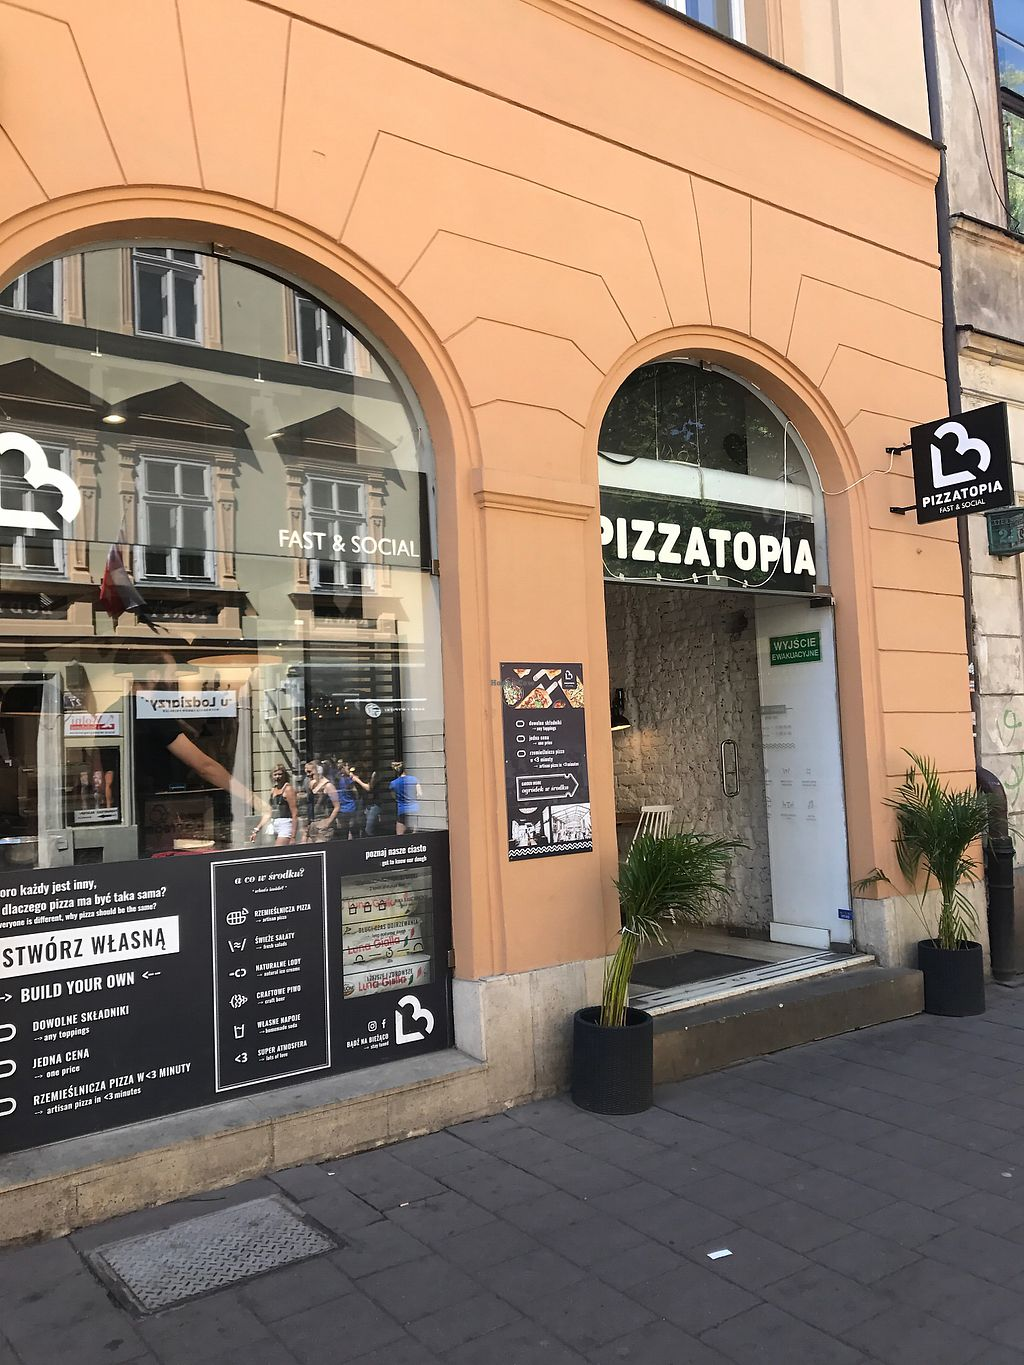 """Photo of Pizzatopia  by <a href=""""/members/profile/AgnesSelnes"""">AgnesSelnes</a> <br/>View of restaurant <br/> May 13, 2018  - <a href='/contact/abuse/image/97708/399139'>Report</a>"""